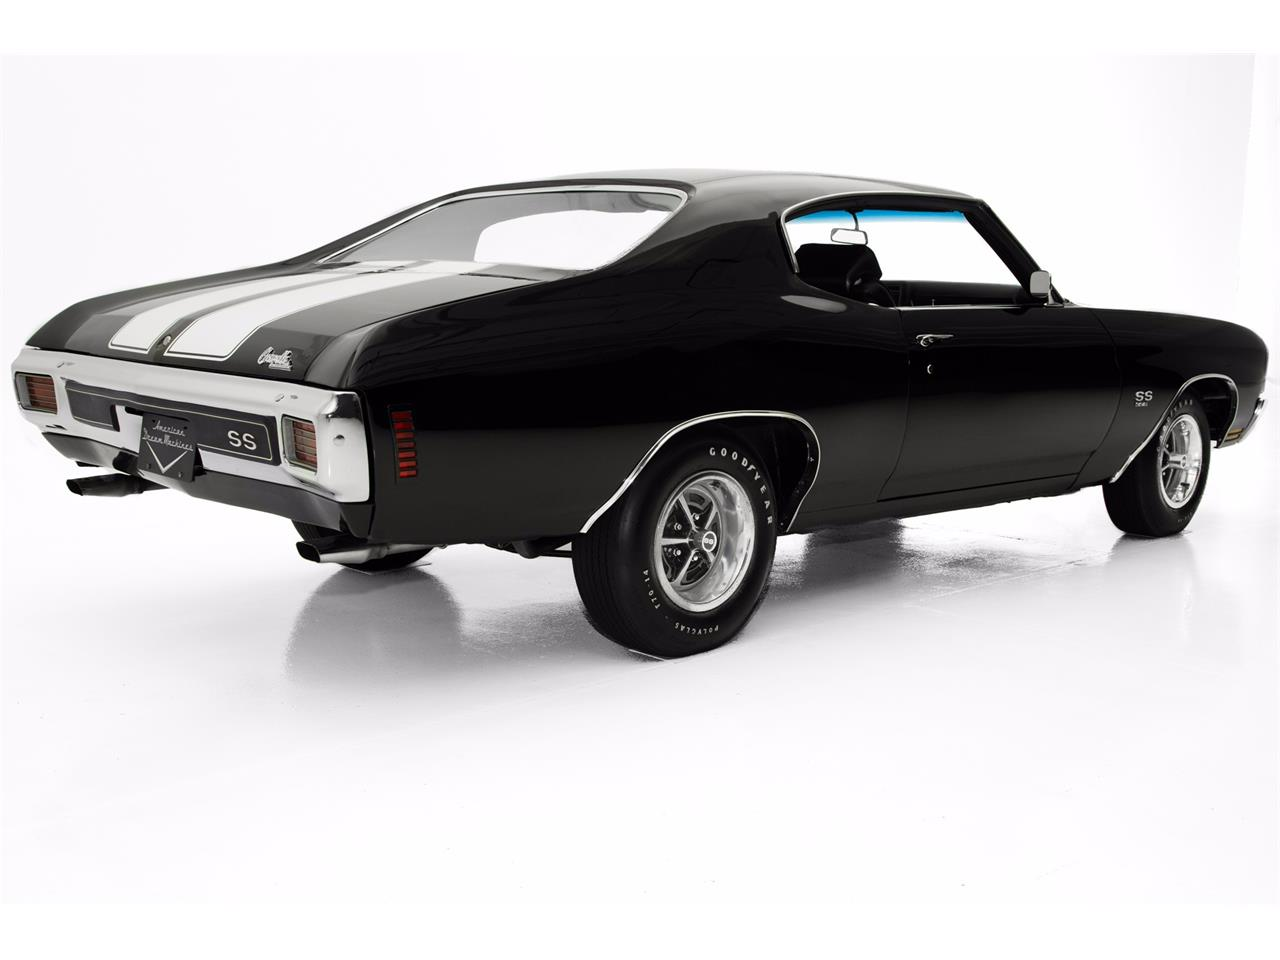 Large Picture of Classic '70 Chevrolet Chevelle - $59,900.00 Offered by American Dream Machines - LQPD